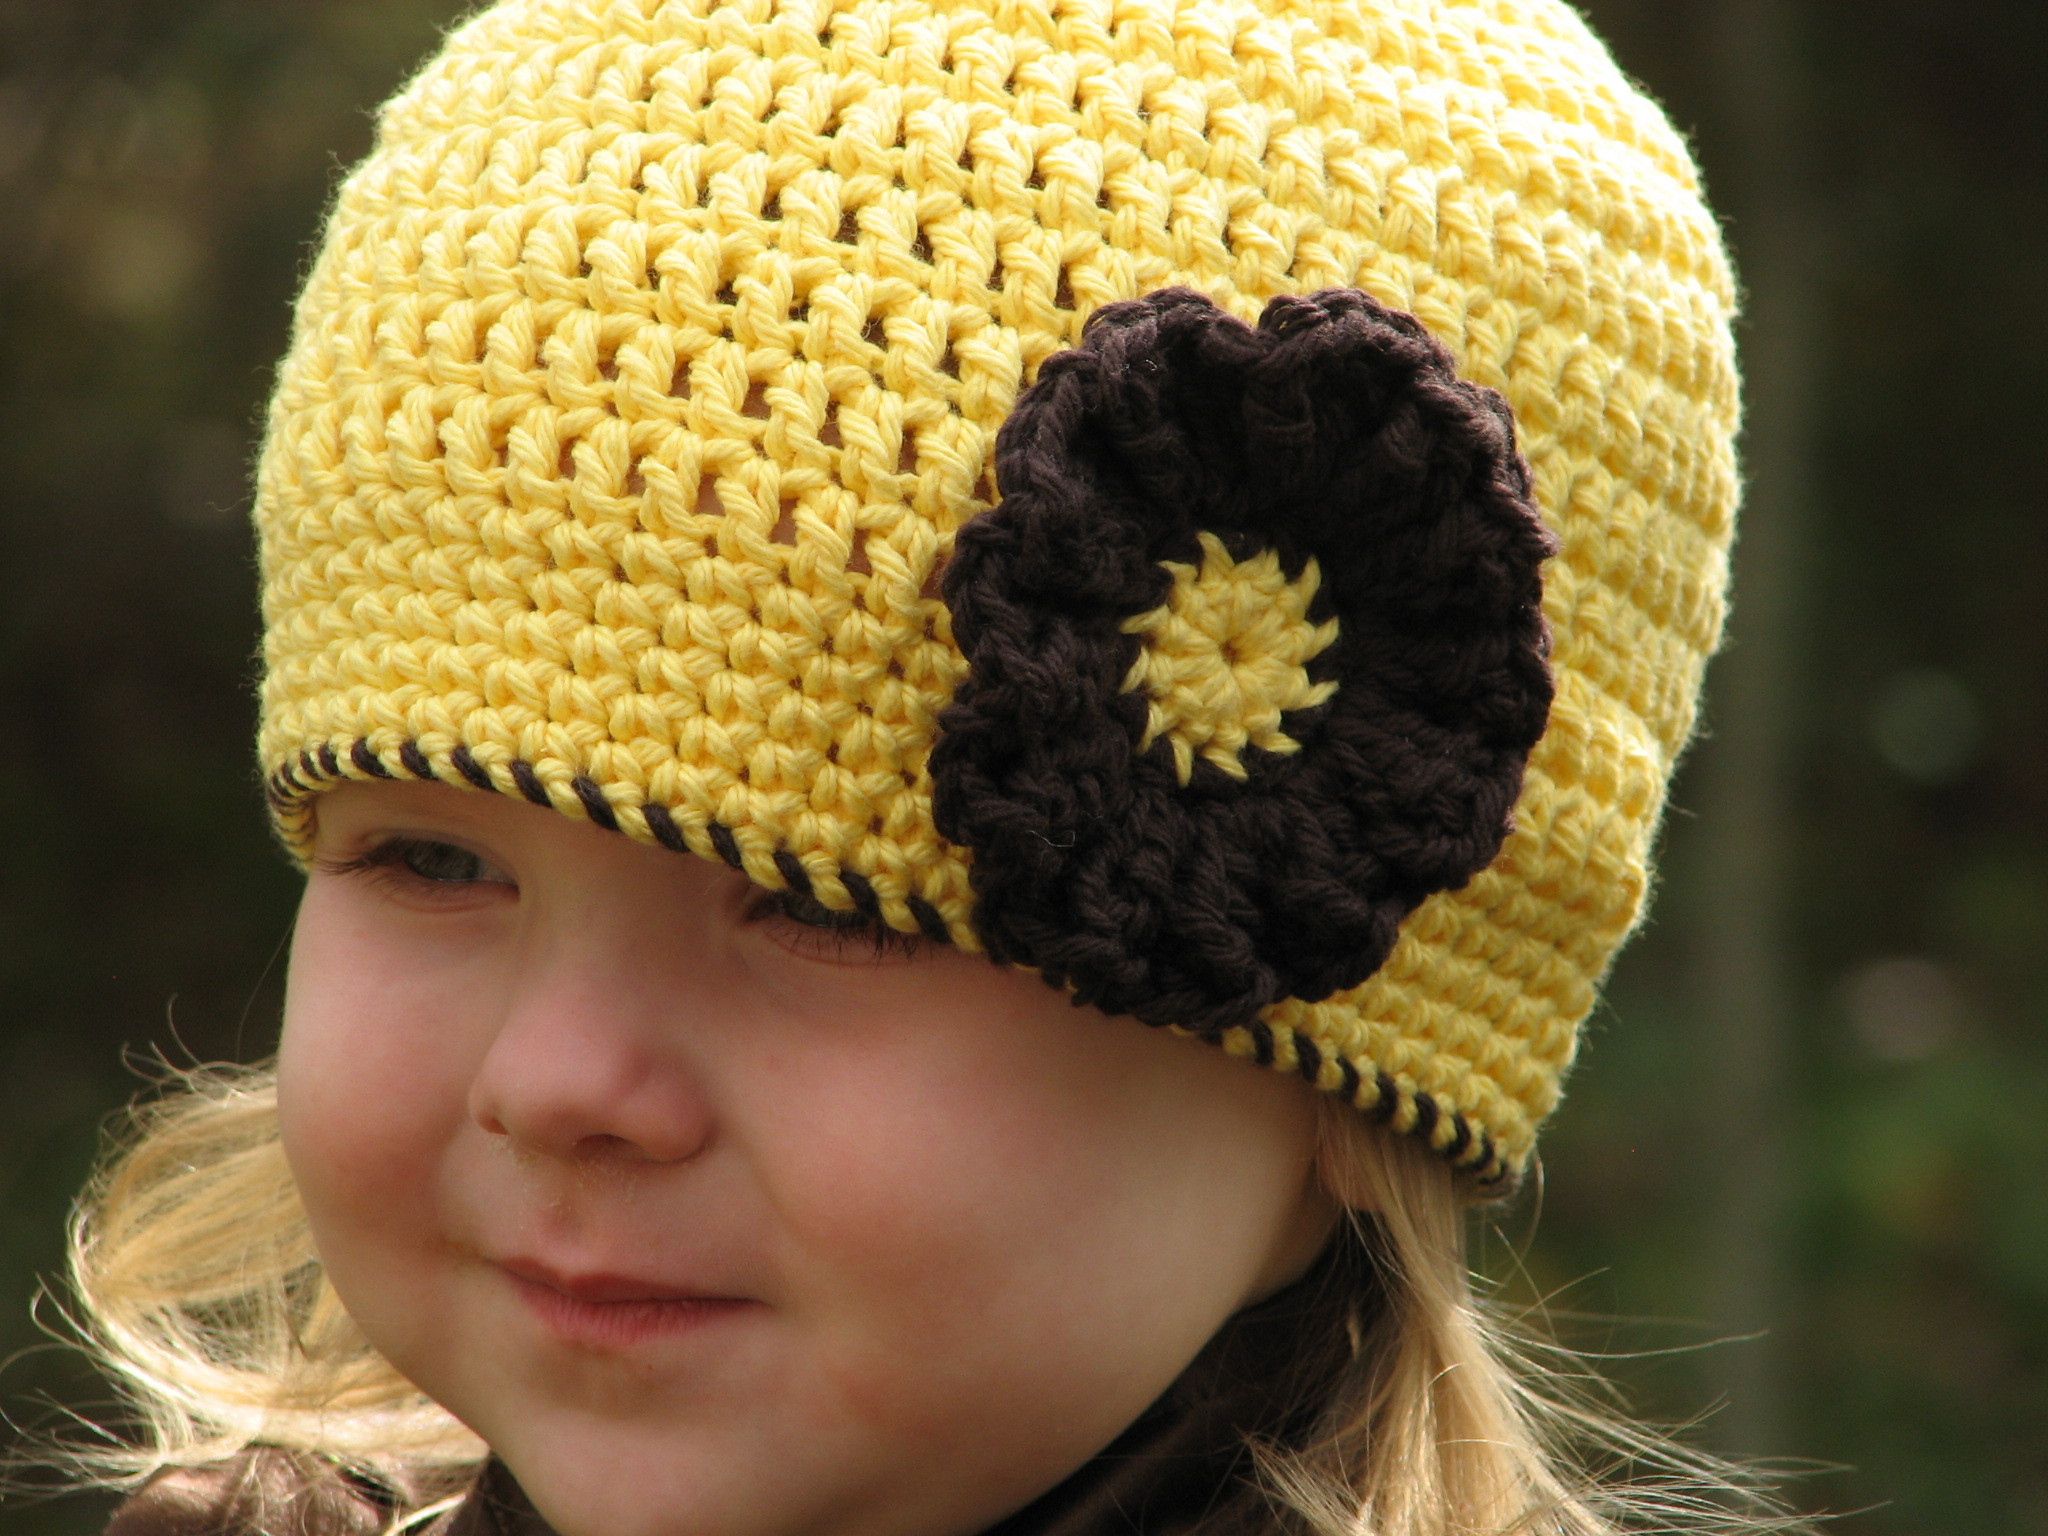 Crochet Beanie Pattern Fresh Sunshine Beanie Crochet Pattern Giveaway Ambassador Of Luxury 43 Pics Crochet Beanie Pattern